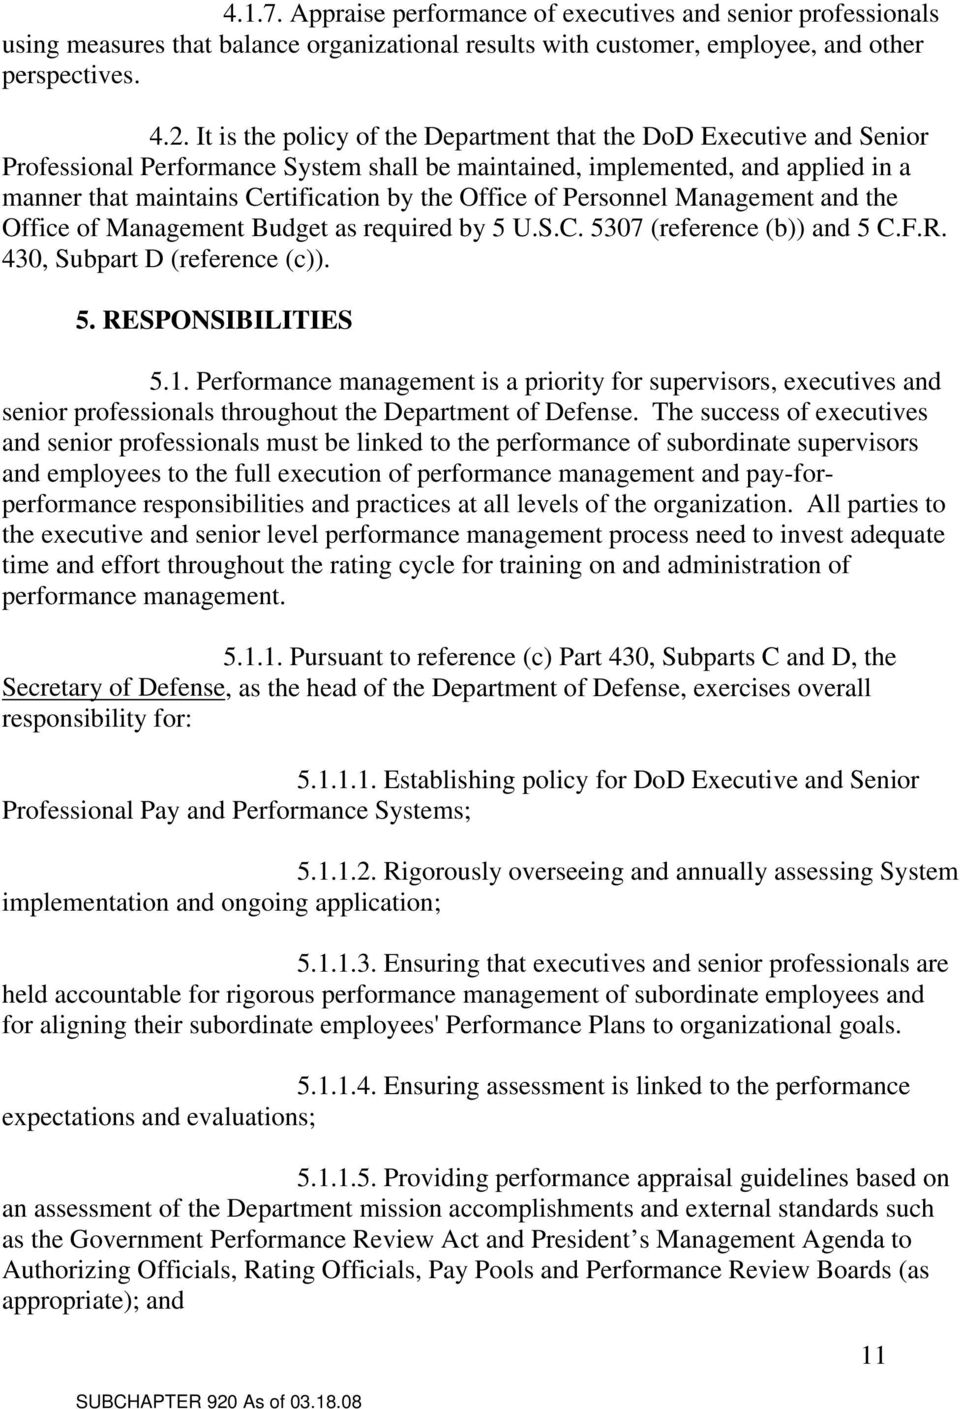 Office of Personnel Management and the Office of Management Budget as required by 5 U.S.C. 5307 (reference (b)) and 5 C.F.R. 430, Subpart D (reference (c)). 5. RESPONSIBILITIES 5.1.